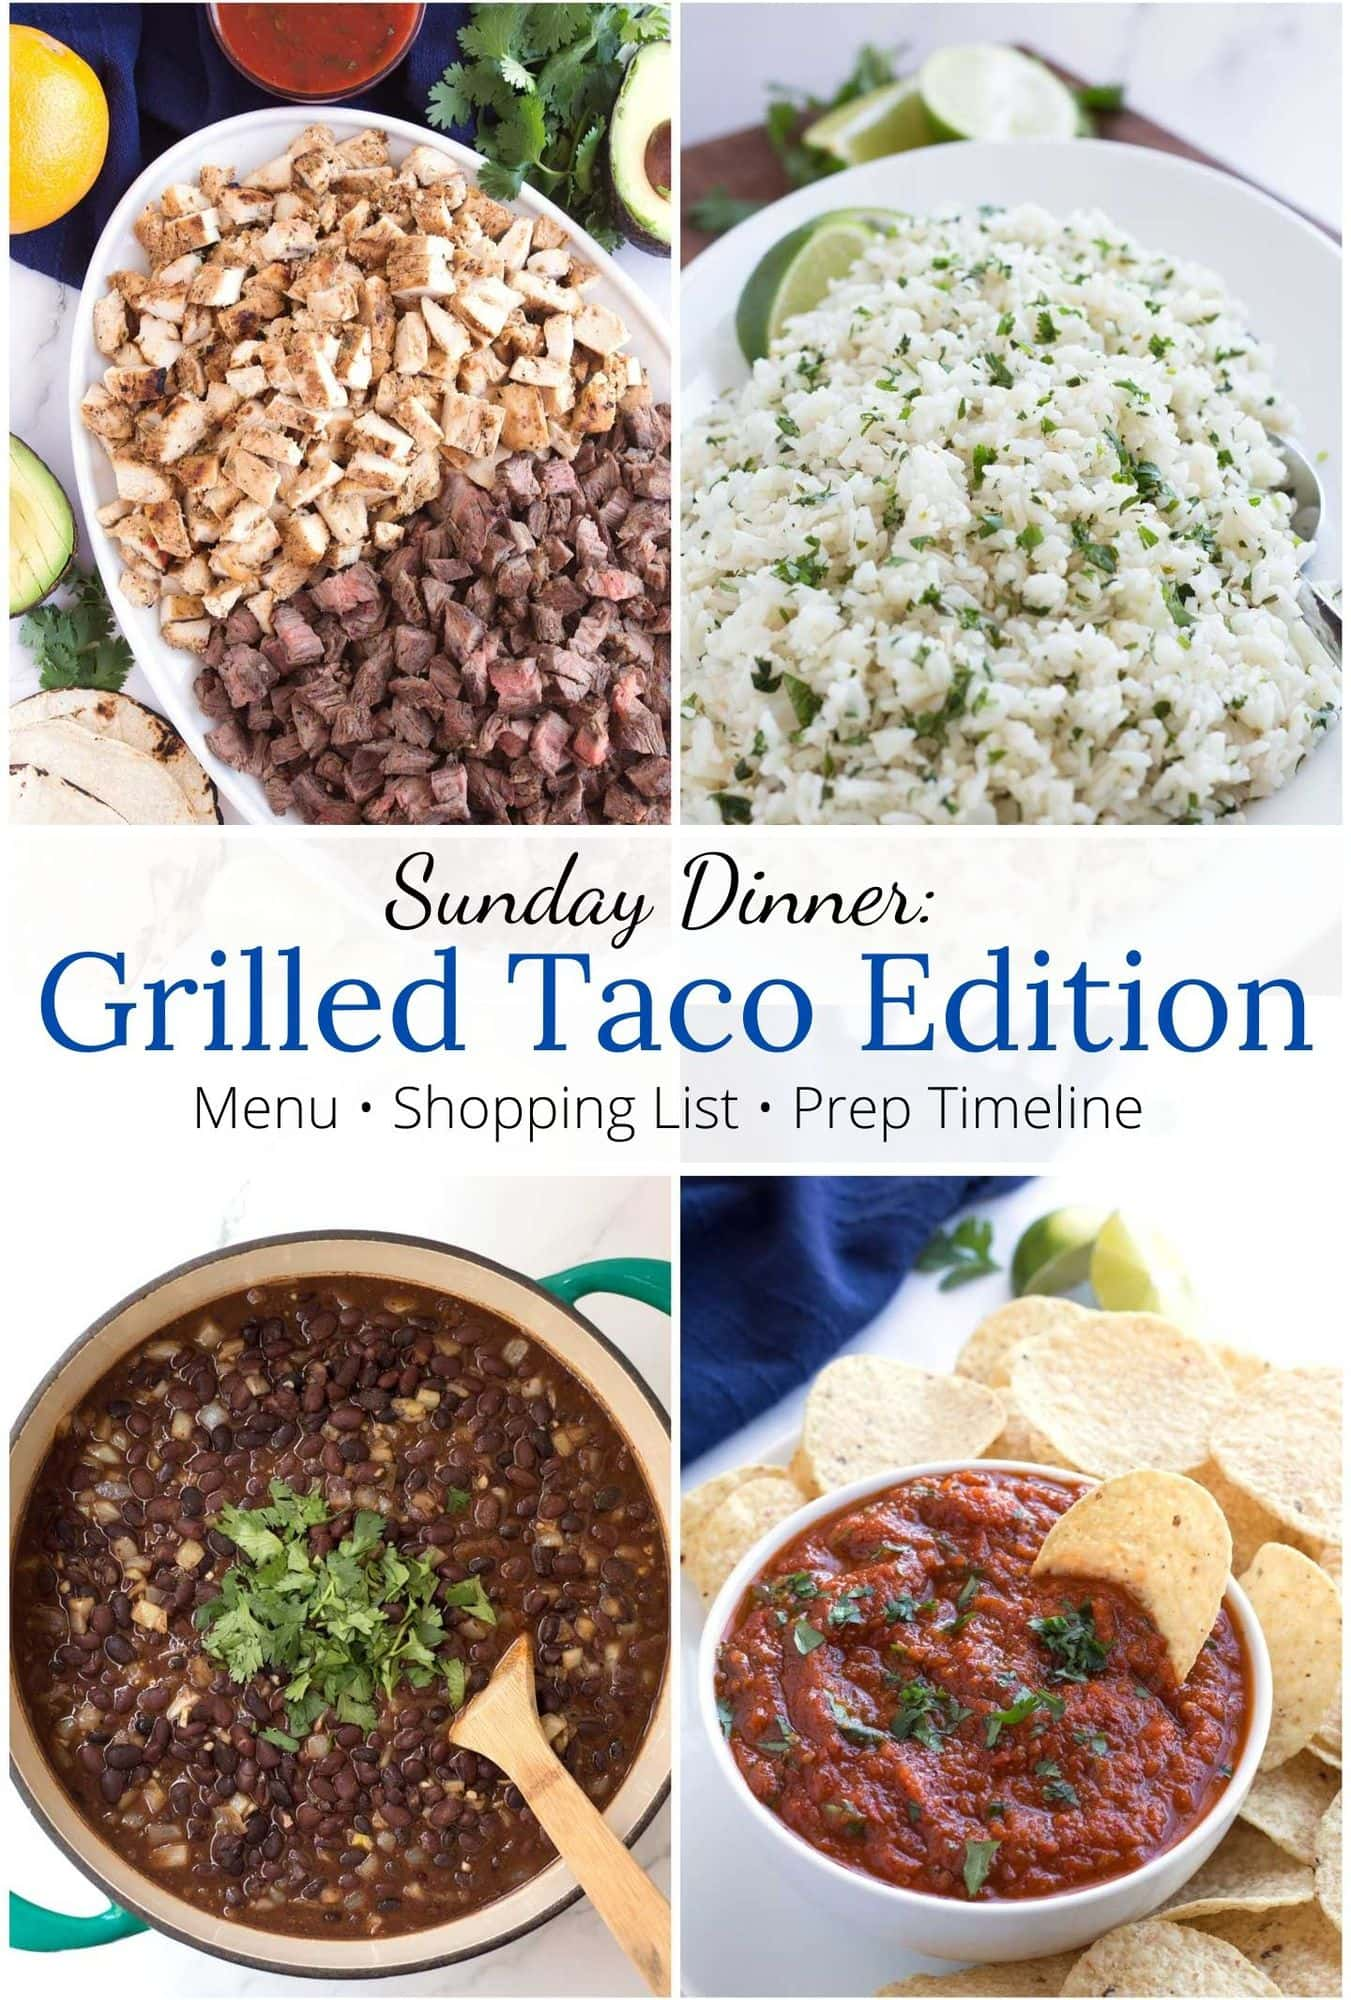 Grilled taco meat, rice, beans, and salsa with graphic overlay.